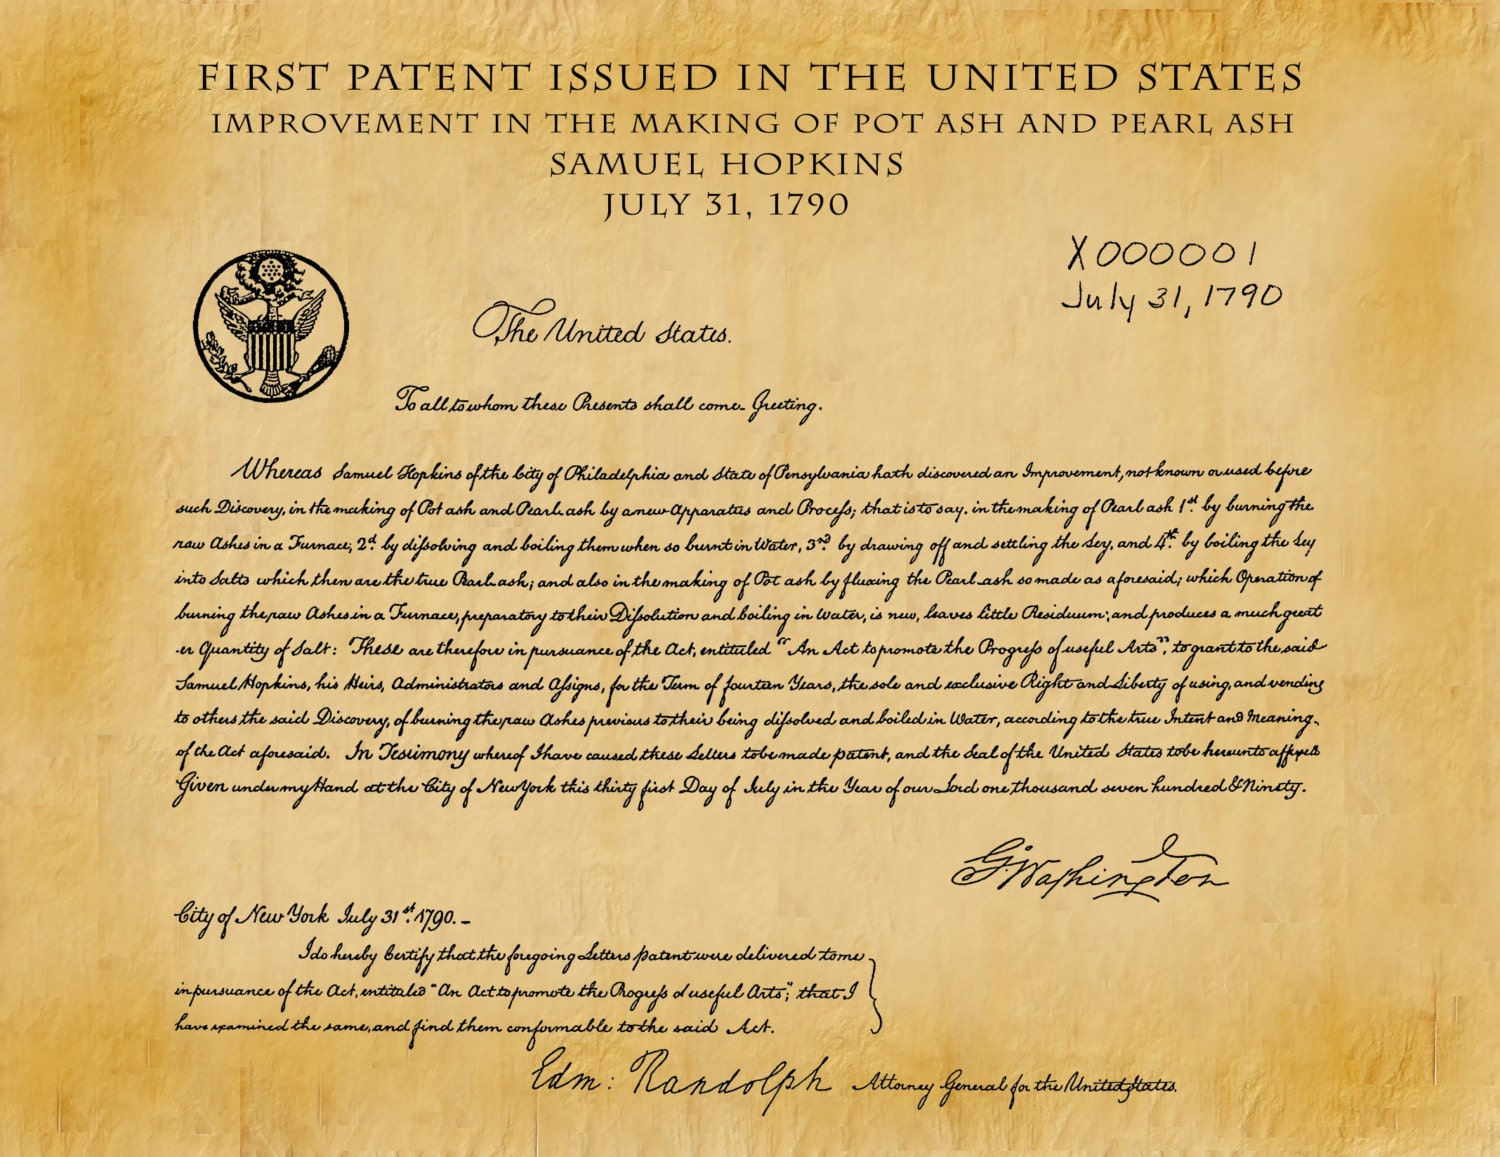 history of the united states patent He landed the patent just two months before the whiskey excise act became law,  history 10 things we learned about kim jong-un from his classmates.